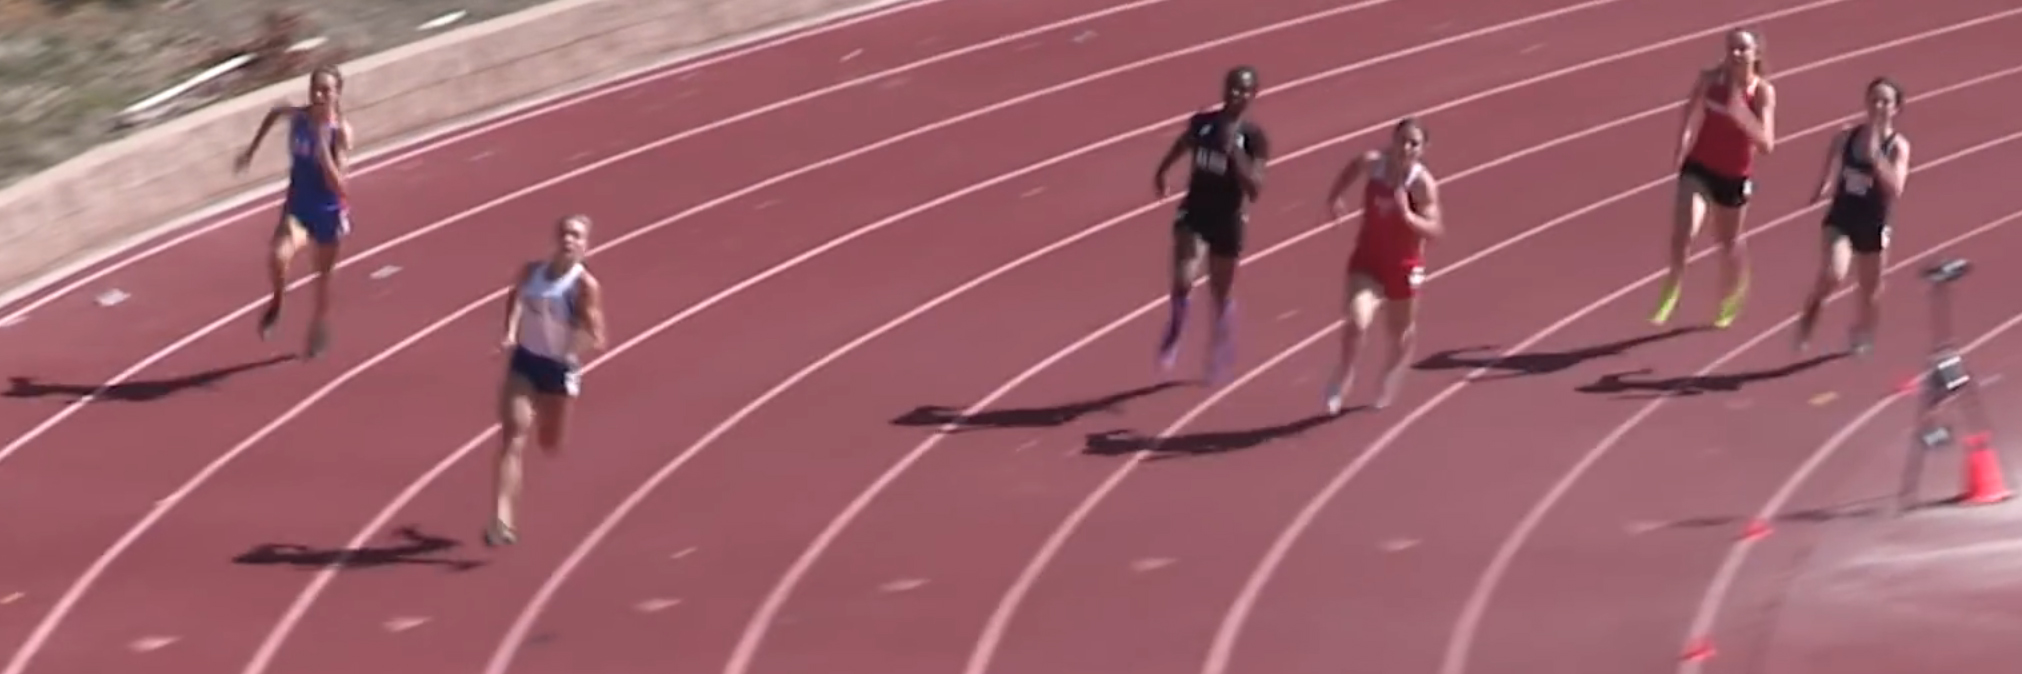 2017-04-22 - Frame Grab - 37 (Var Girls 200, 6 Heats)